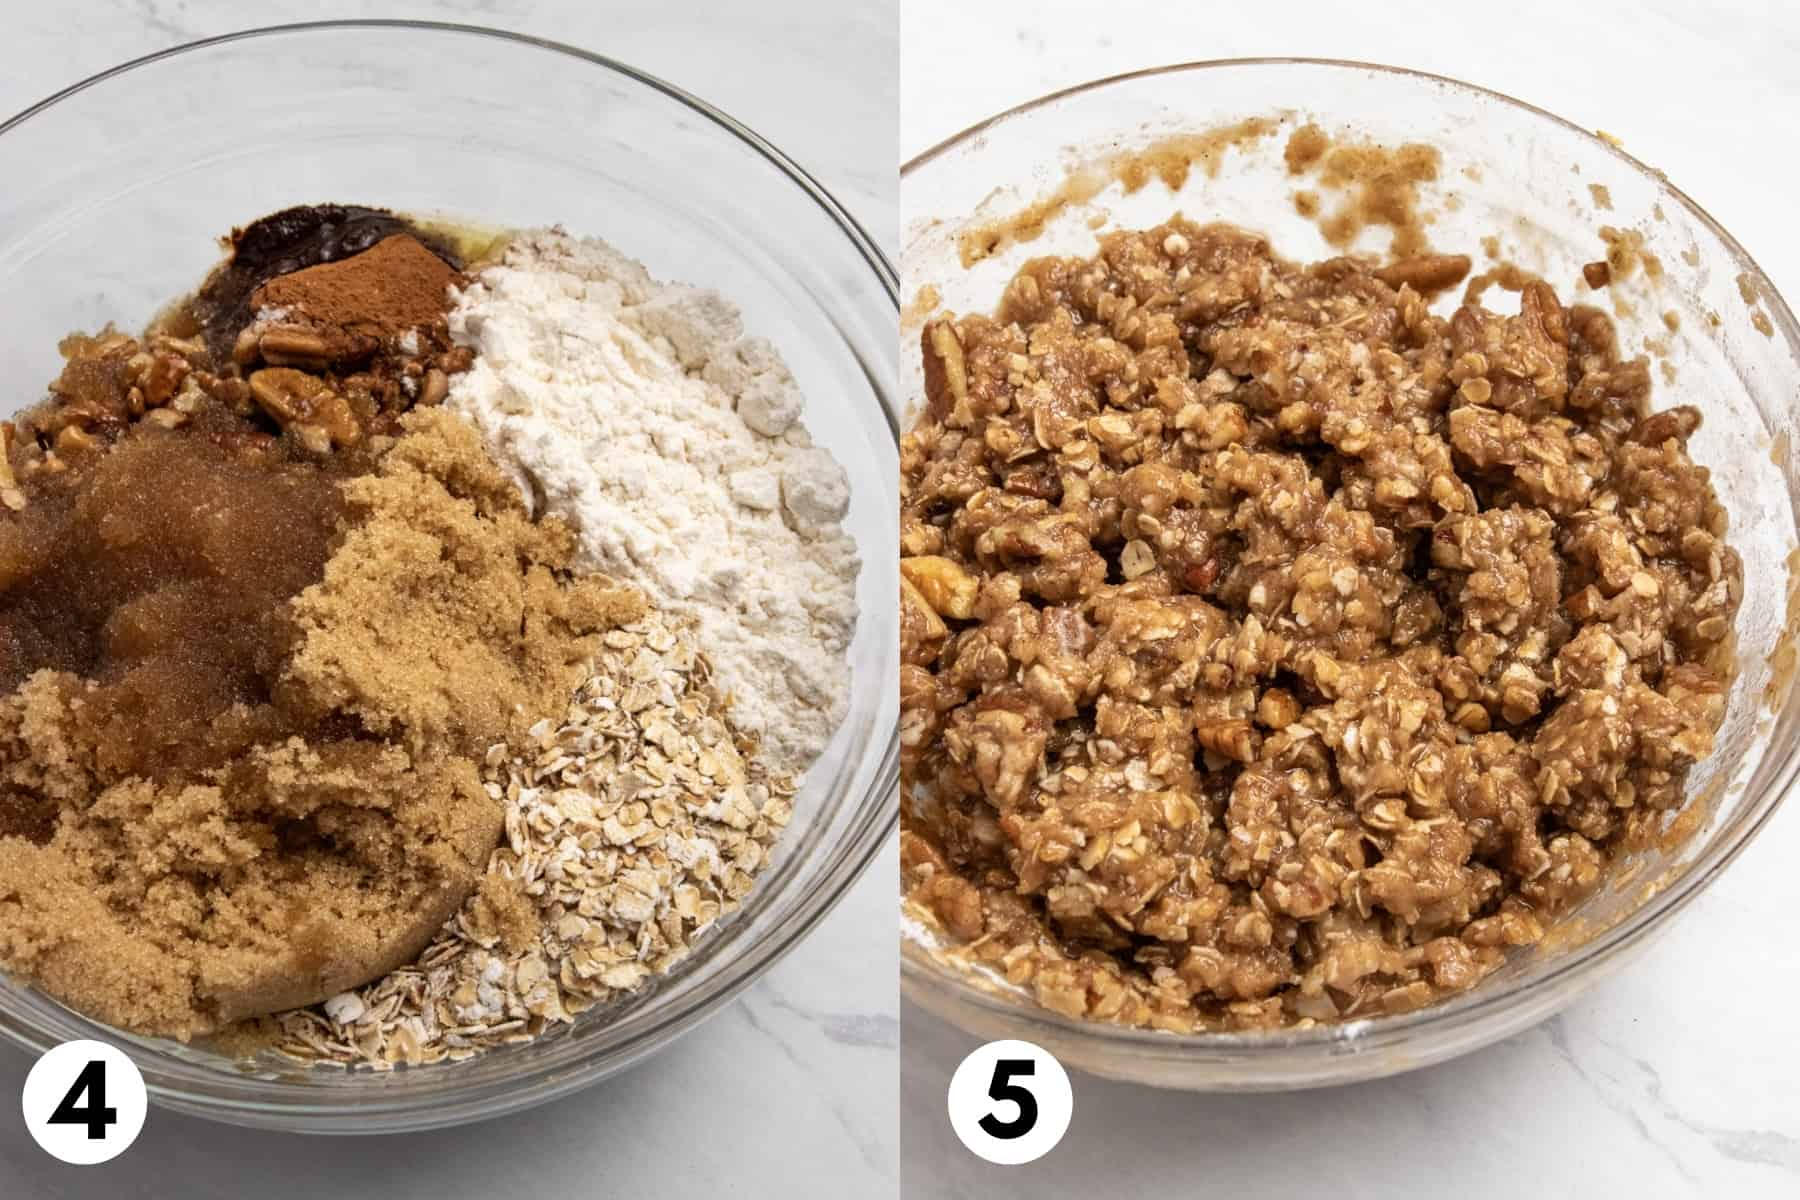 Oats, butter, flour and other ingredients in mixing bowl.